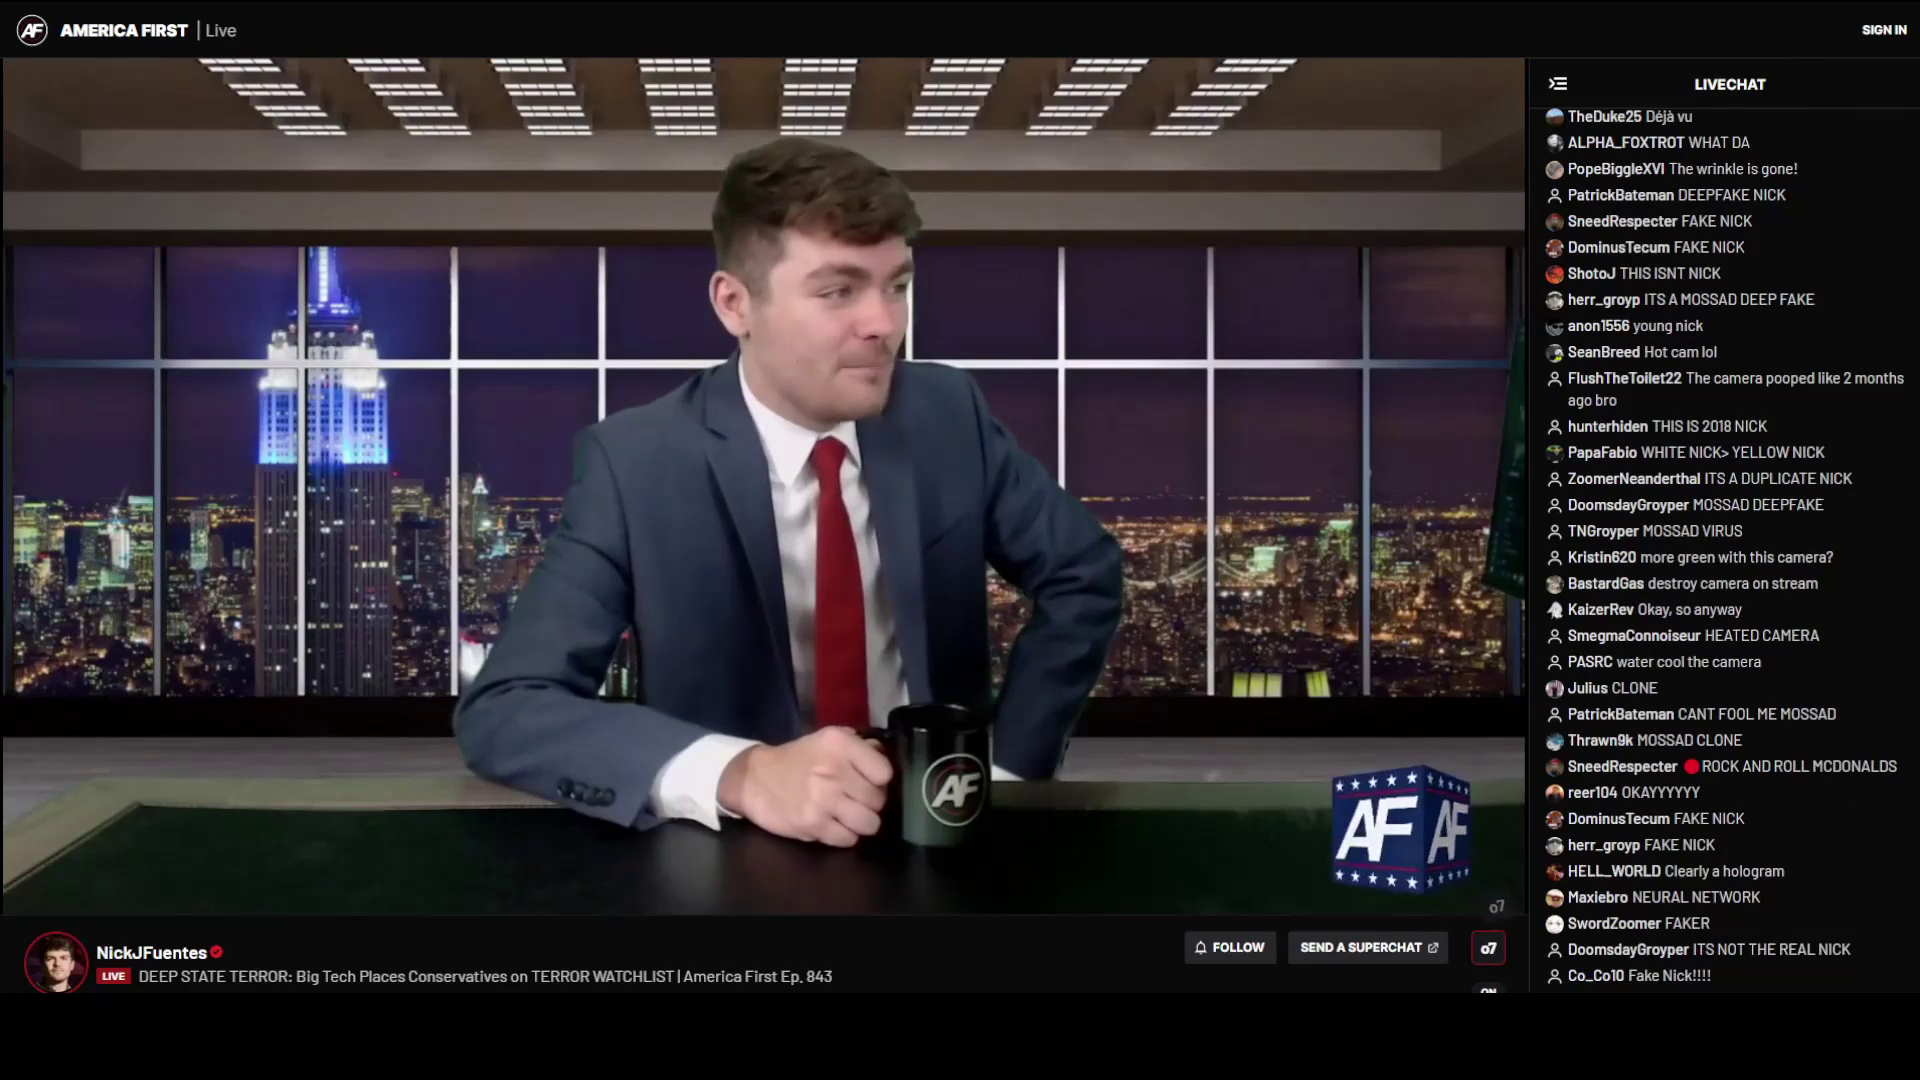 Nick Fuentes Speaks The Truth And Calls Out The Perverted Jews